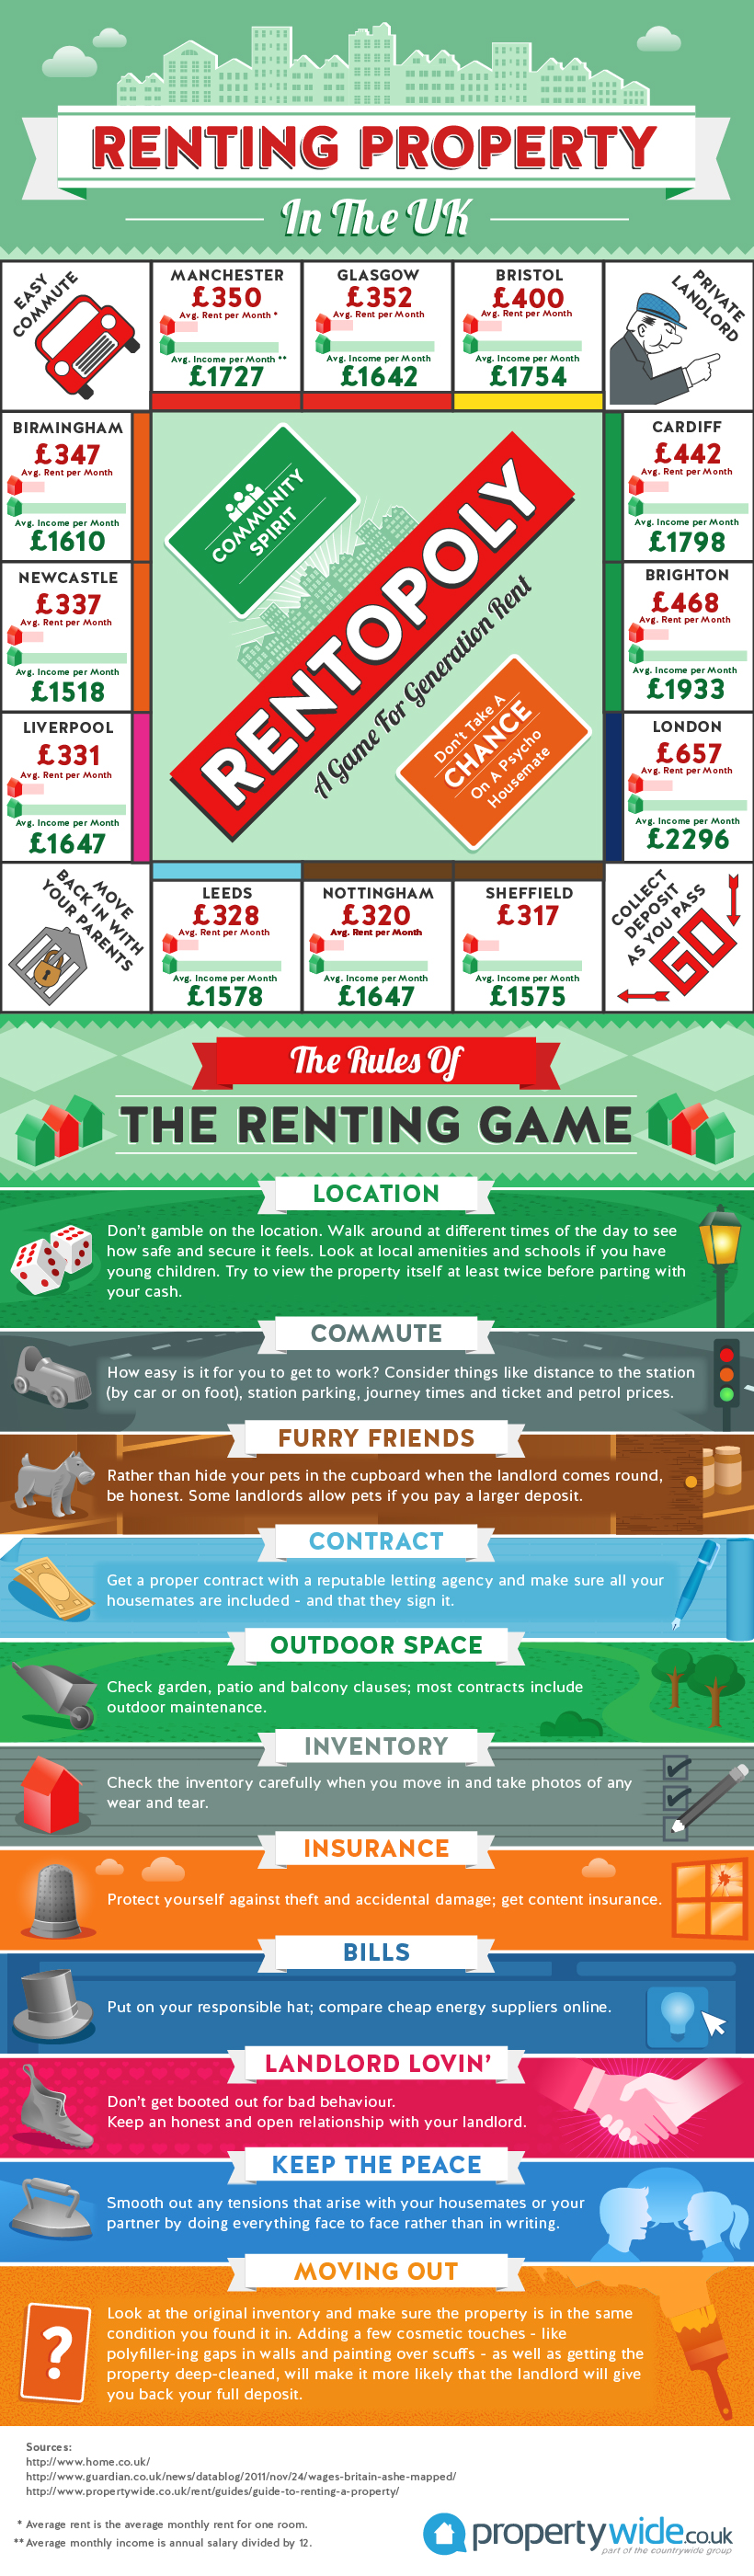 Renting_property_in_the_UK_Rentopoly_infographic